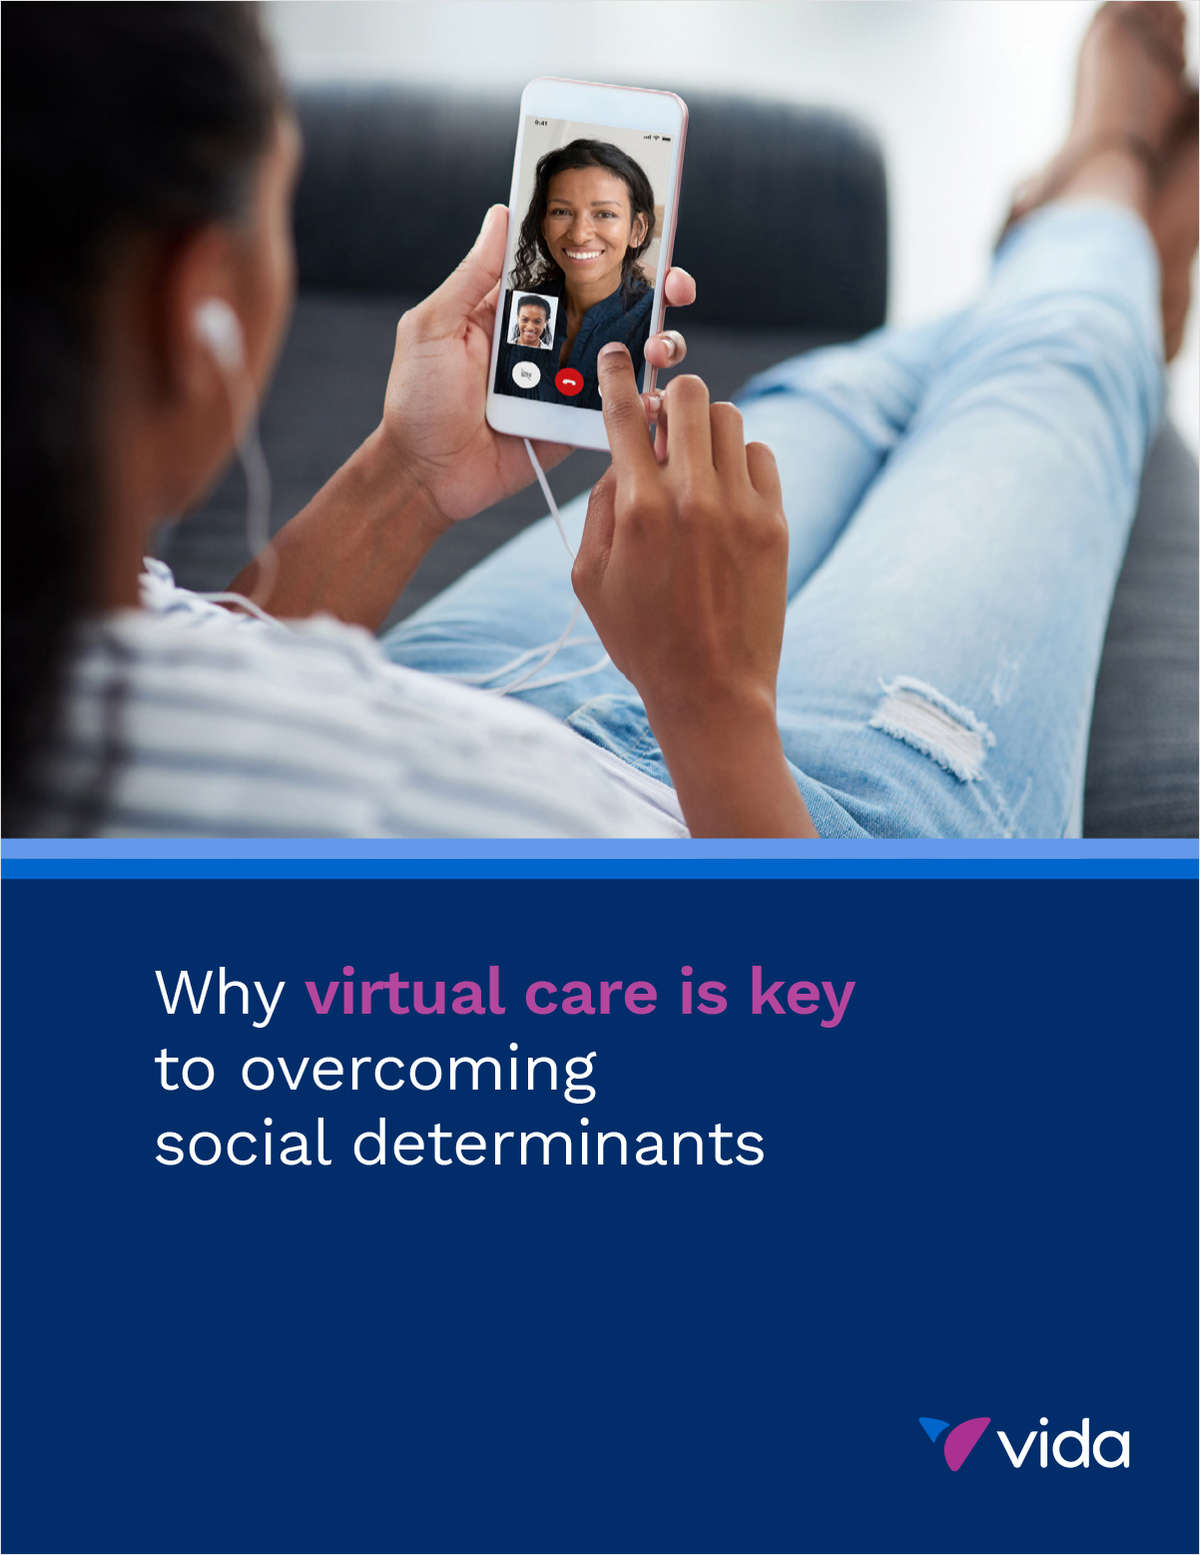 Why virtual care is key to overcoming social determinants